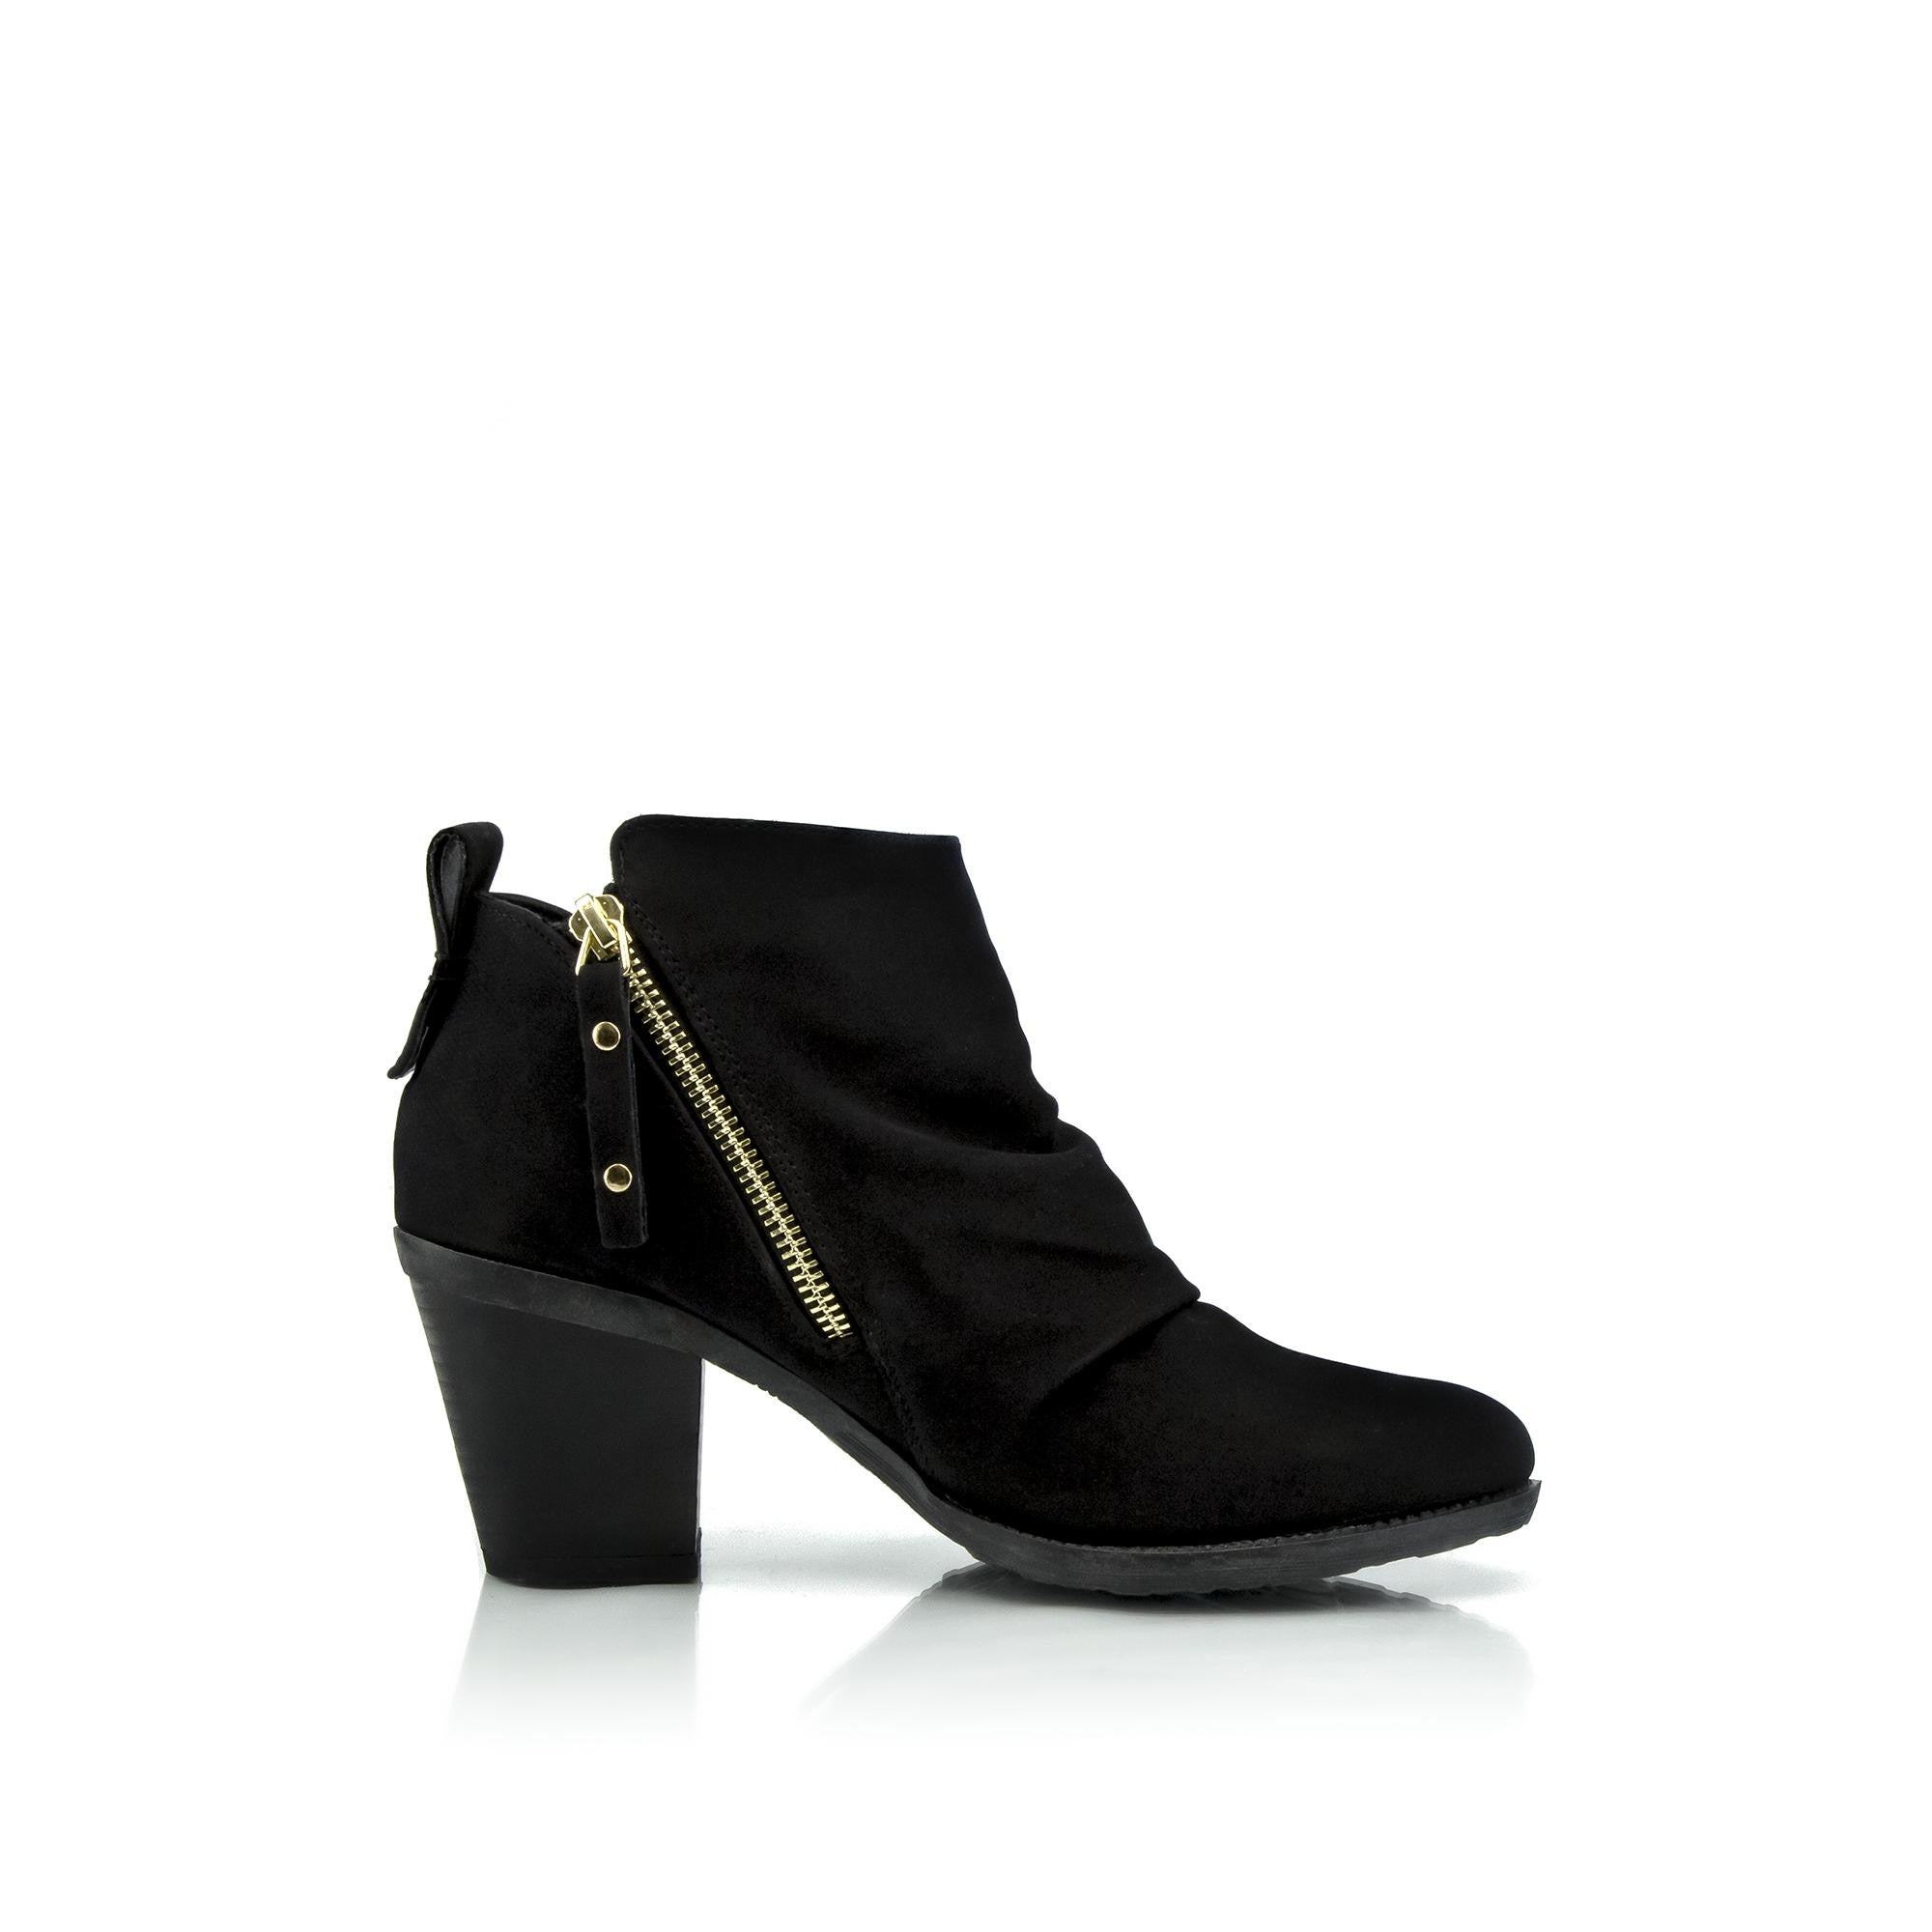 SONYA Ankle Boot